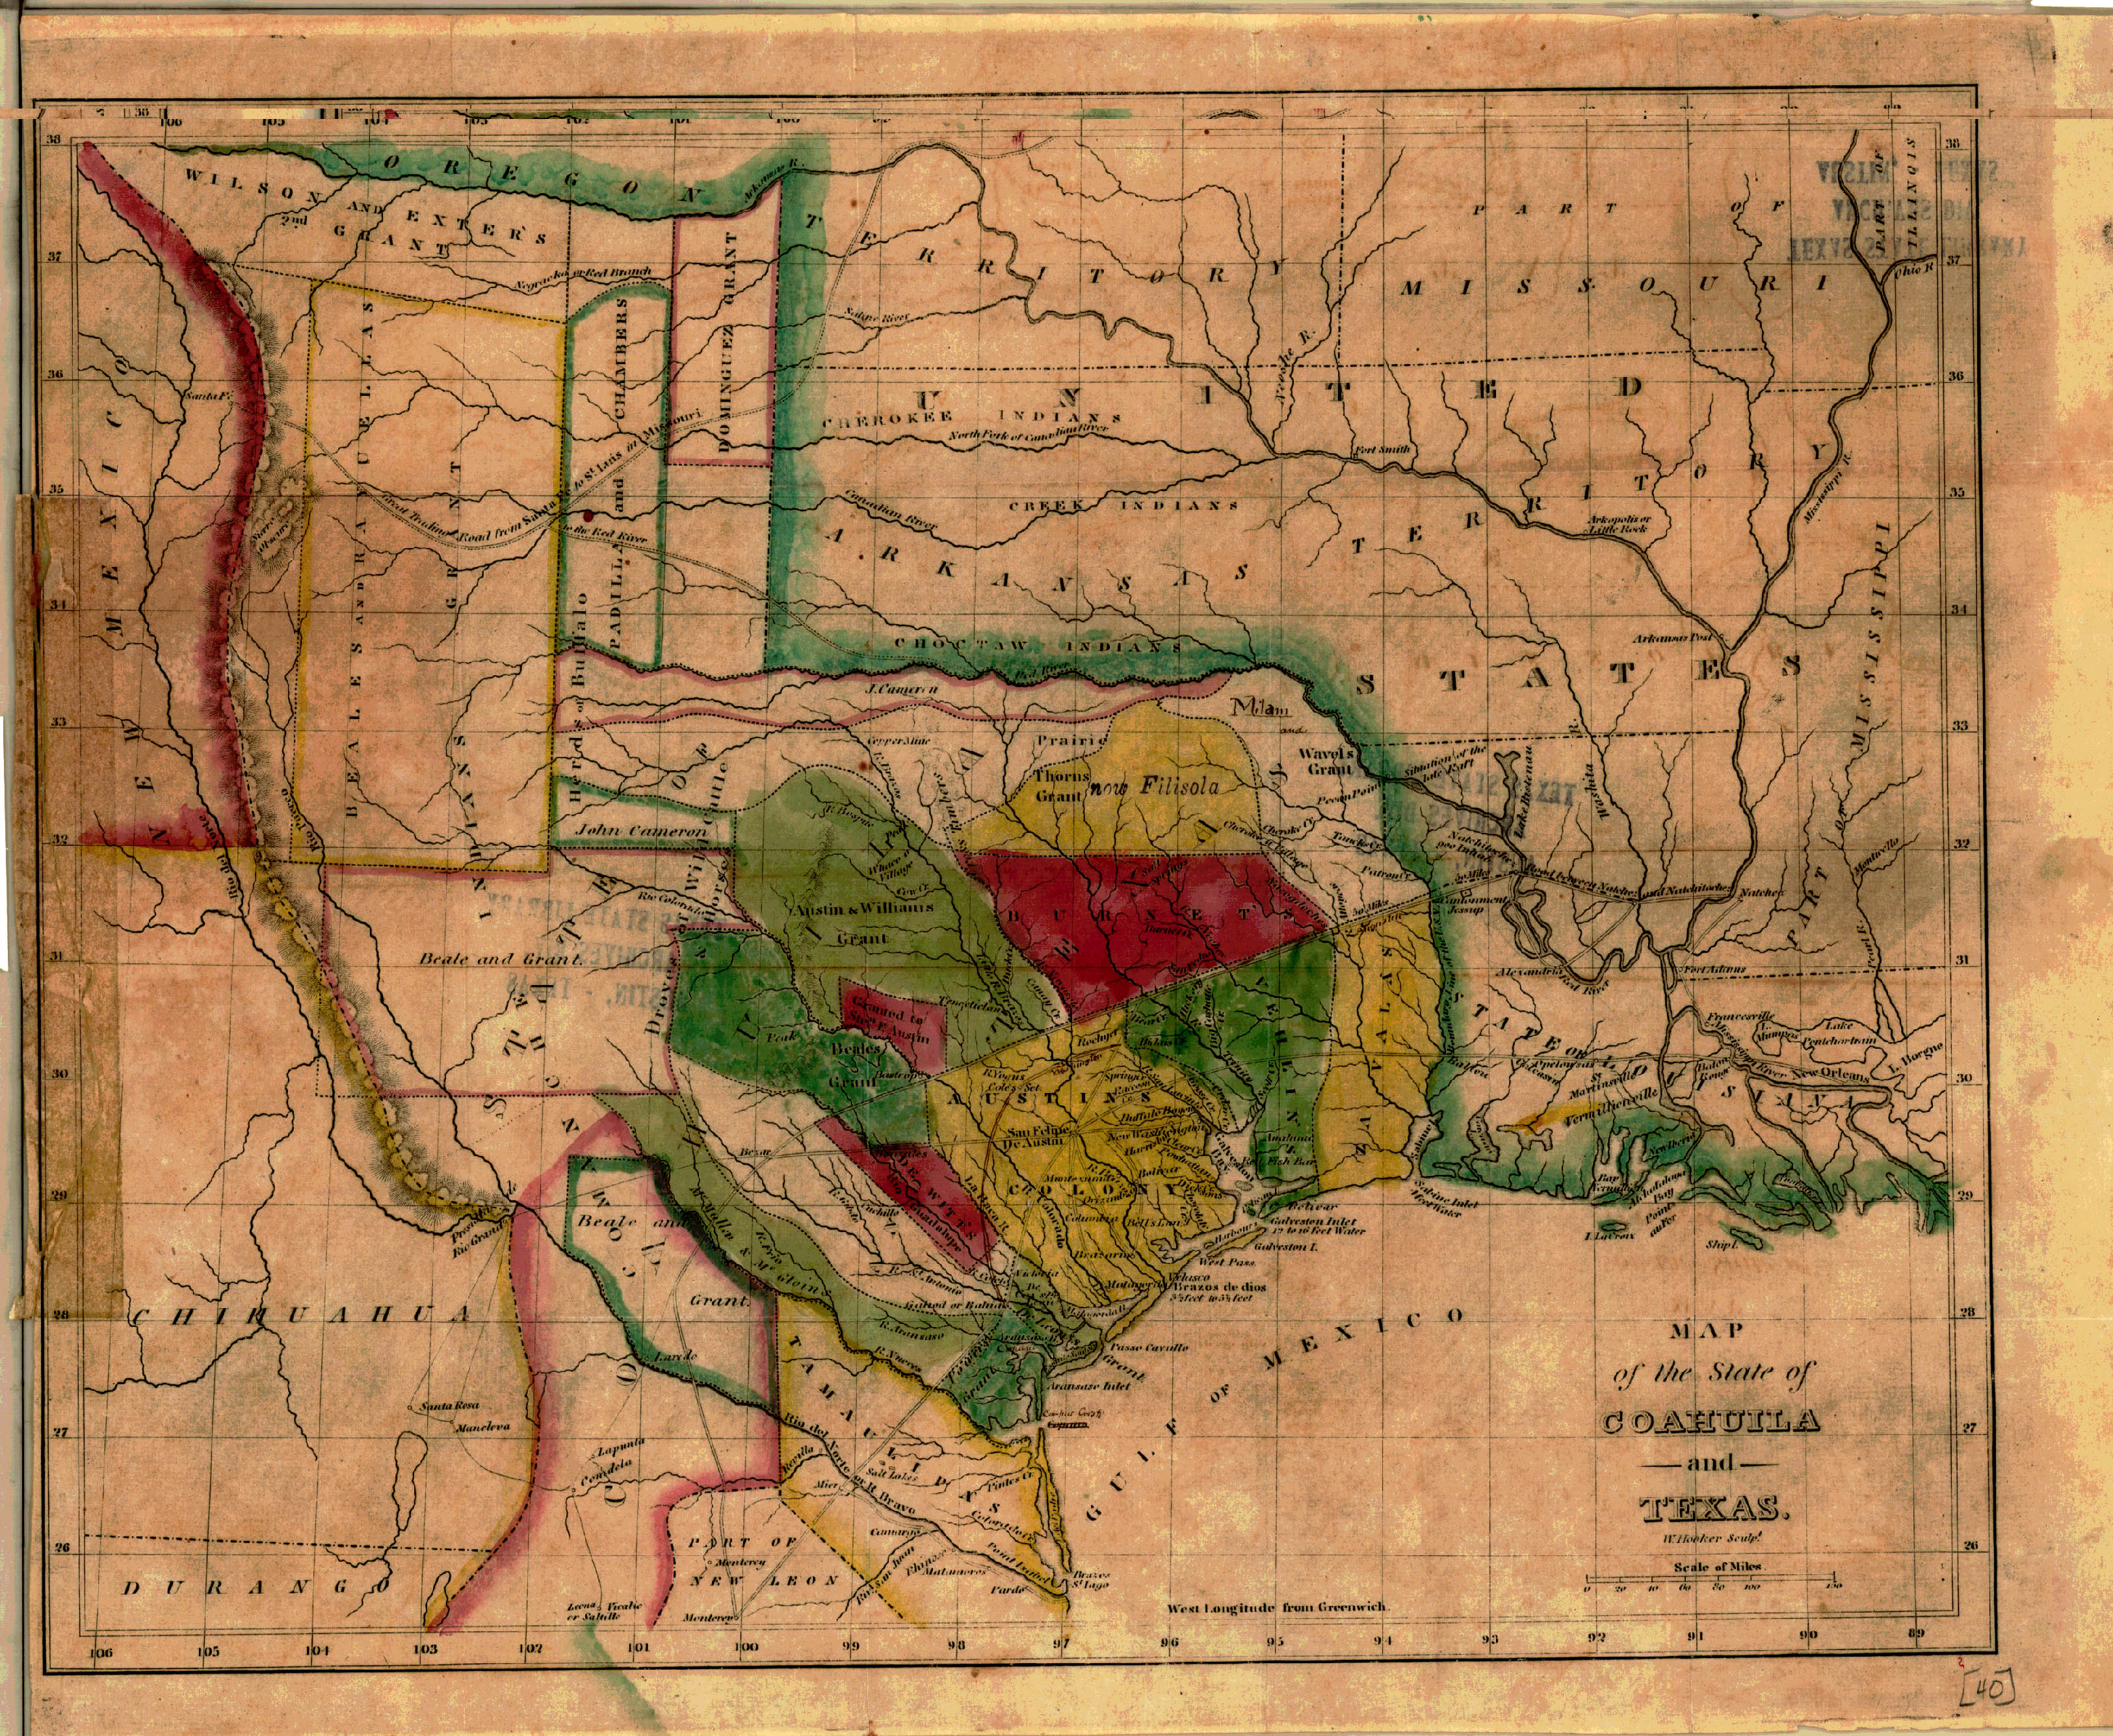 The U S Went To War With Mexico 1846 1848 To Settle The Boundary Dispute After Texas Joined The United States Of America